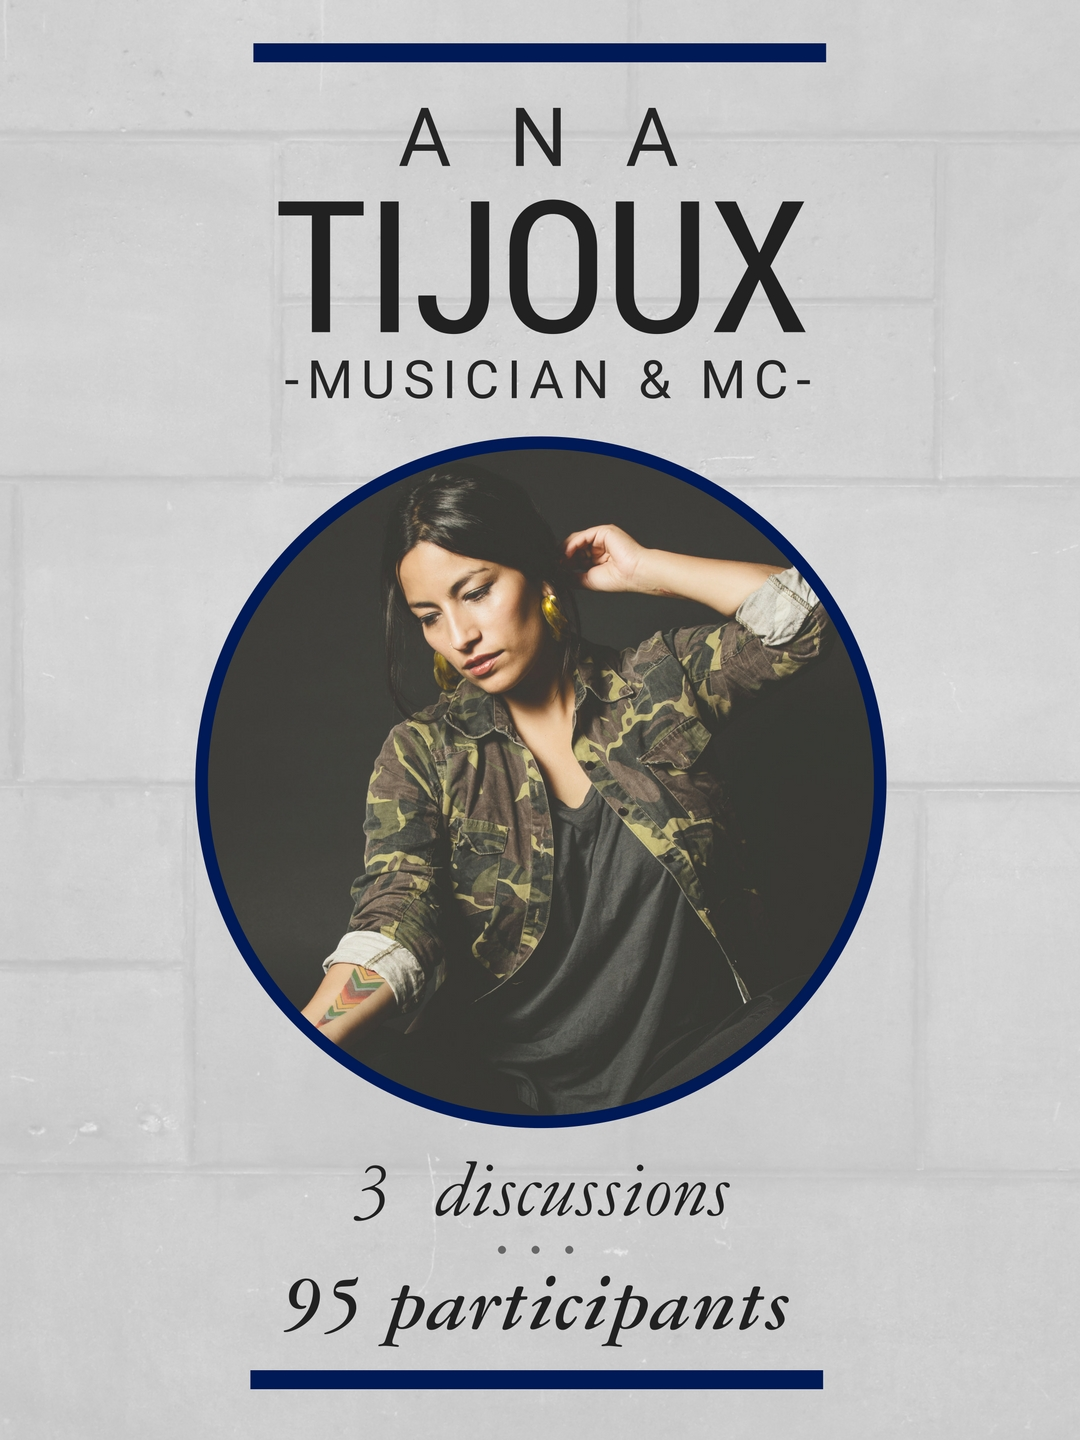 During her residency, musician/MC Ana Tijoux took part in 3 discussions and interacted with 95 participants